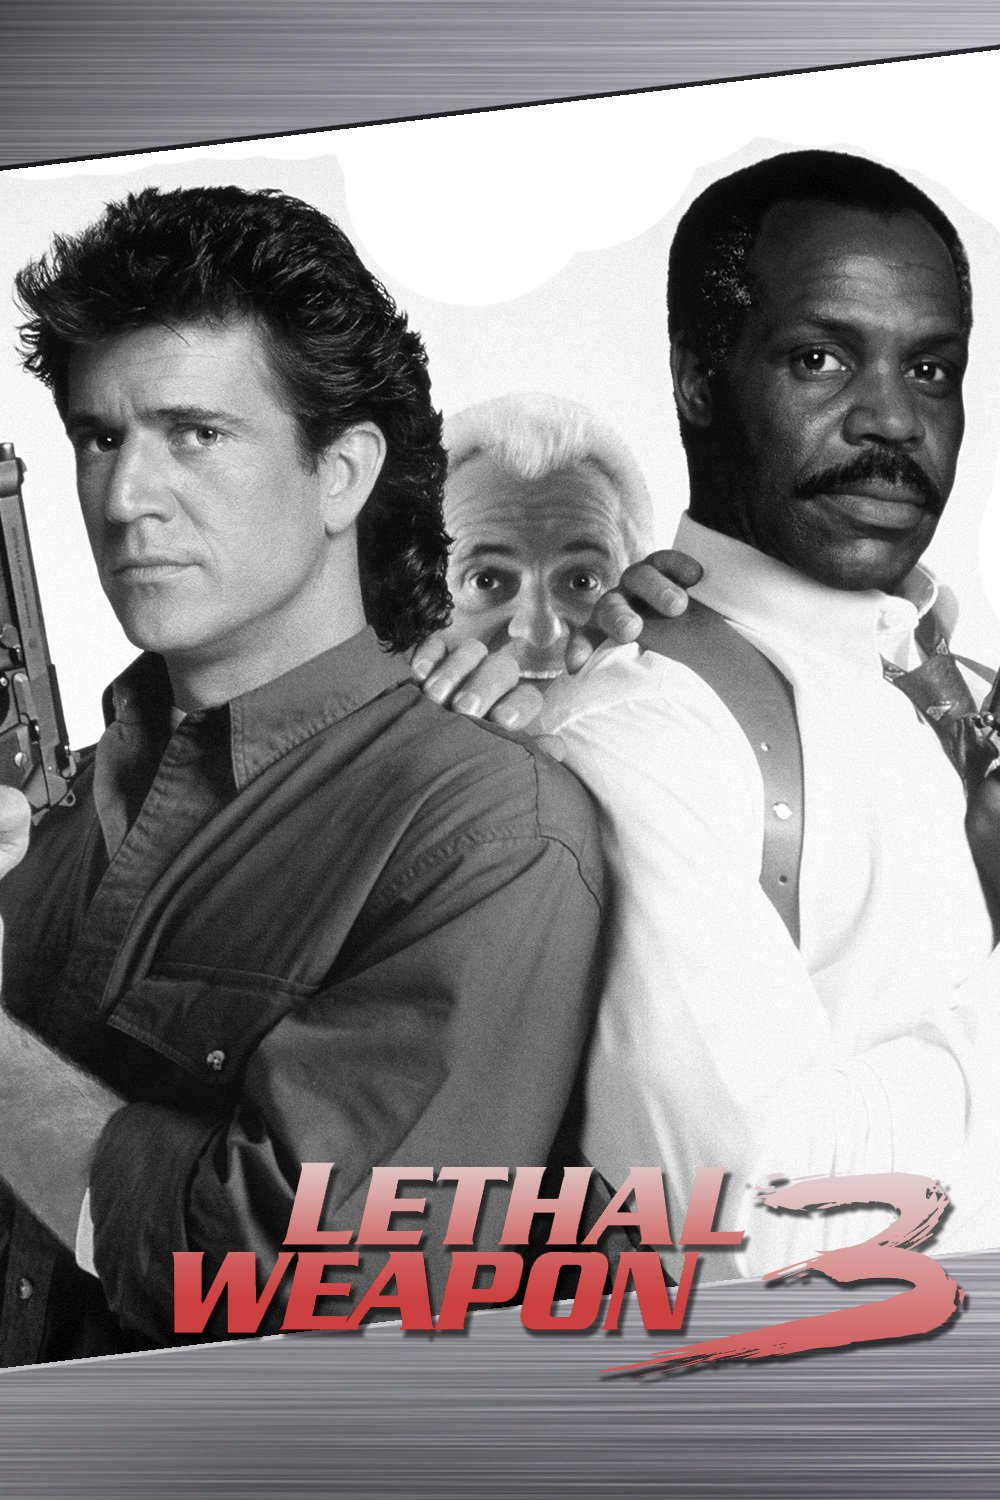 lethal weapon - photo #26